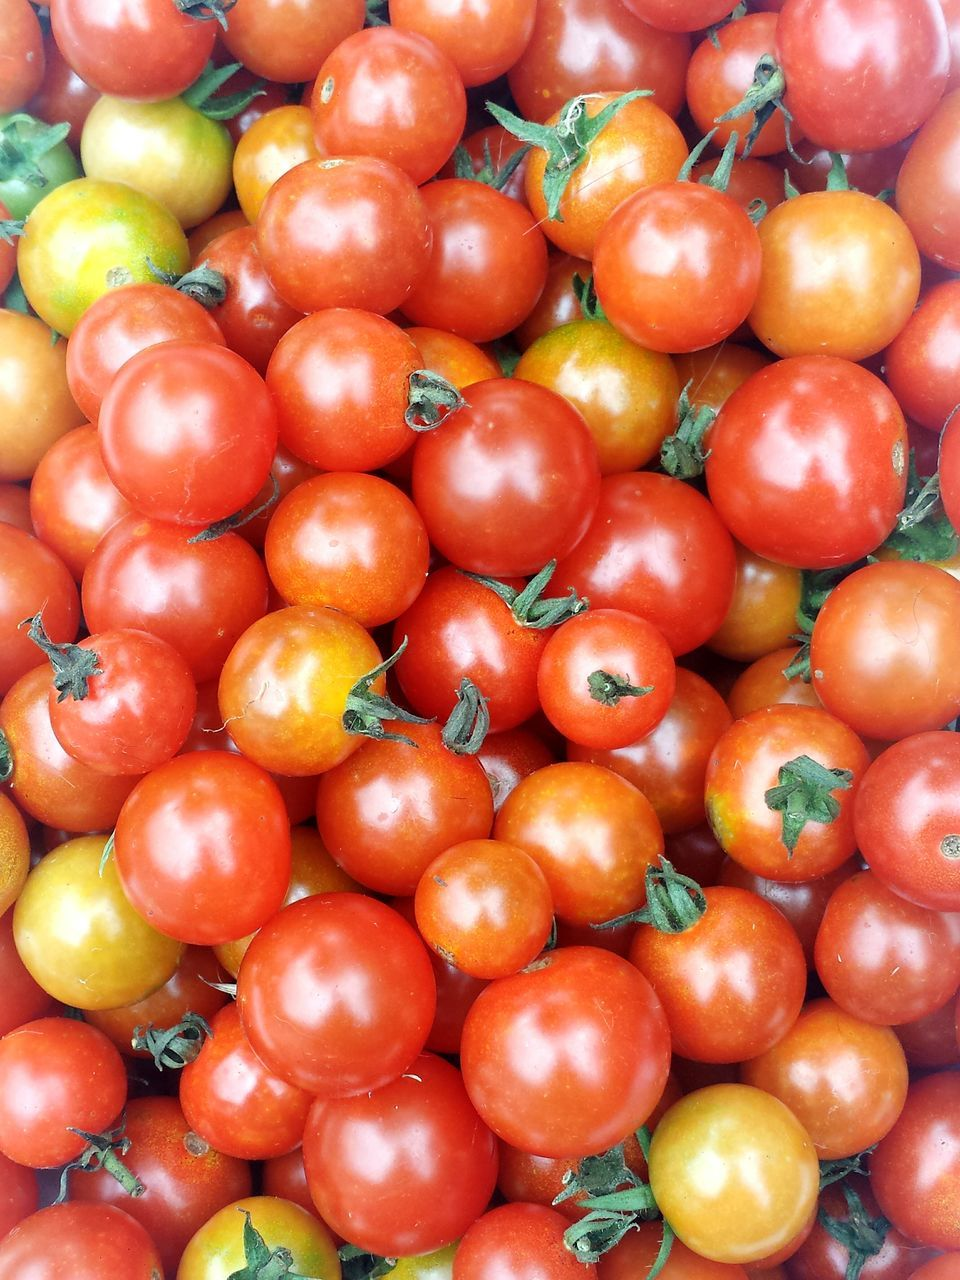 red, abundance, food, full frame, tomato, no people, backgrounds, freshness, day, healthy eating, close-up, outdoors